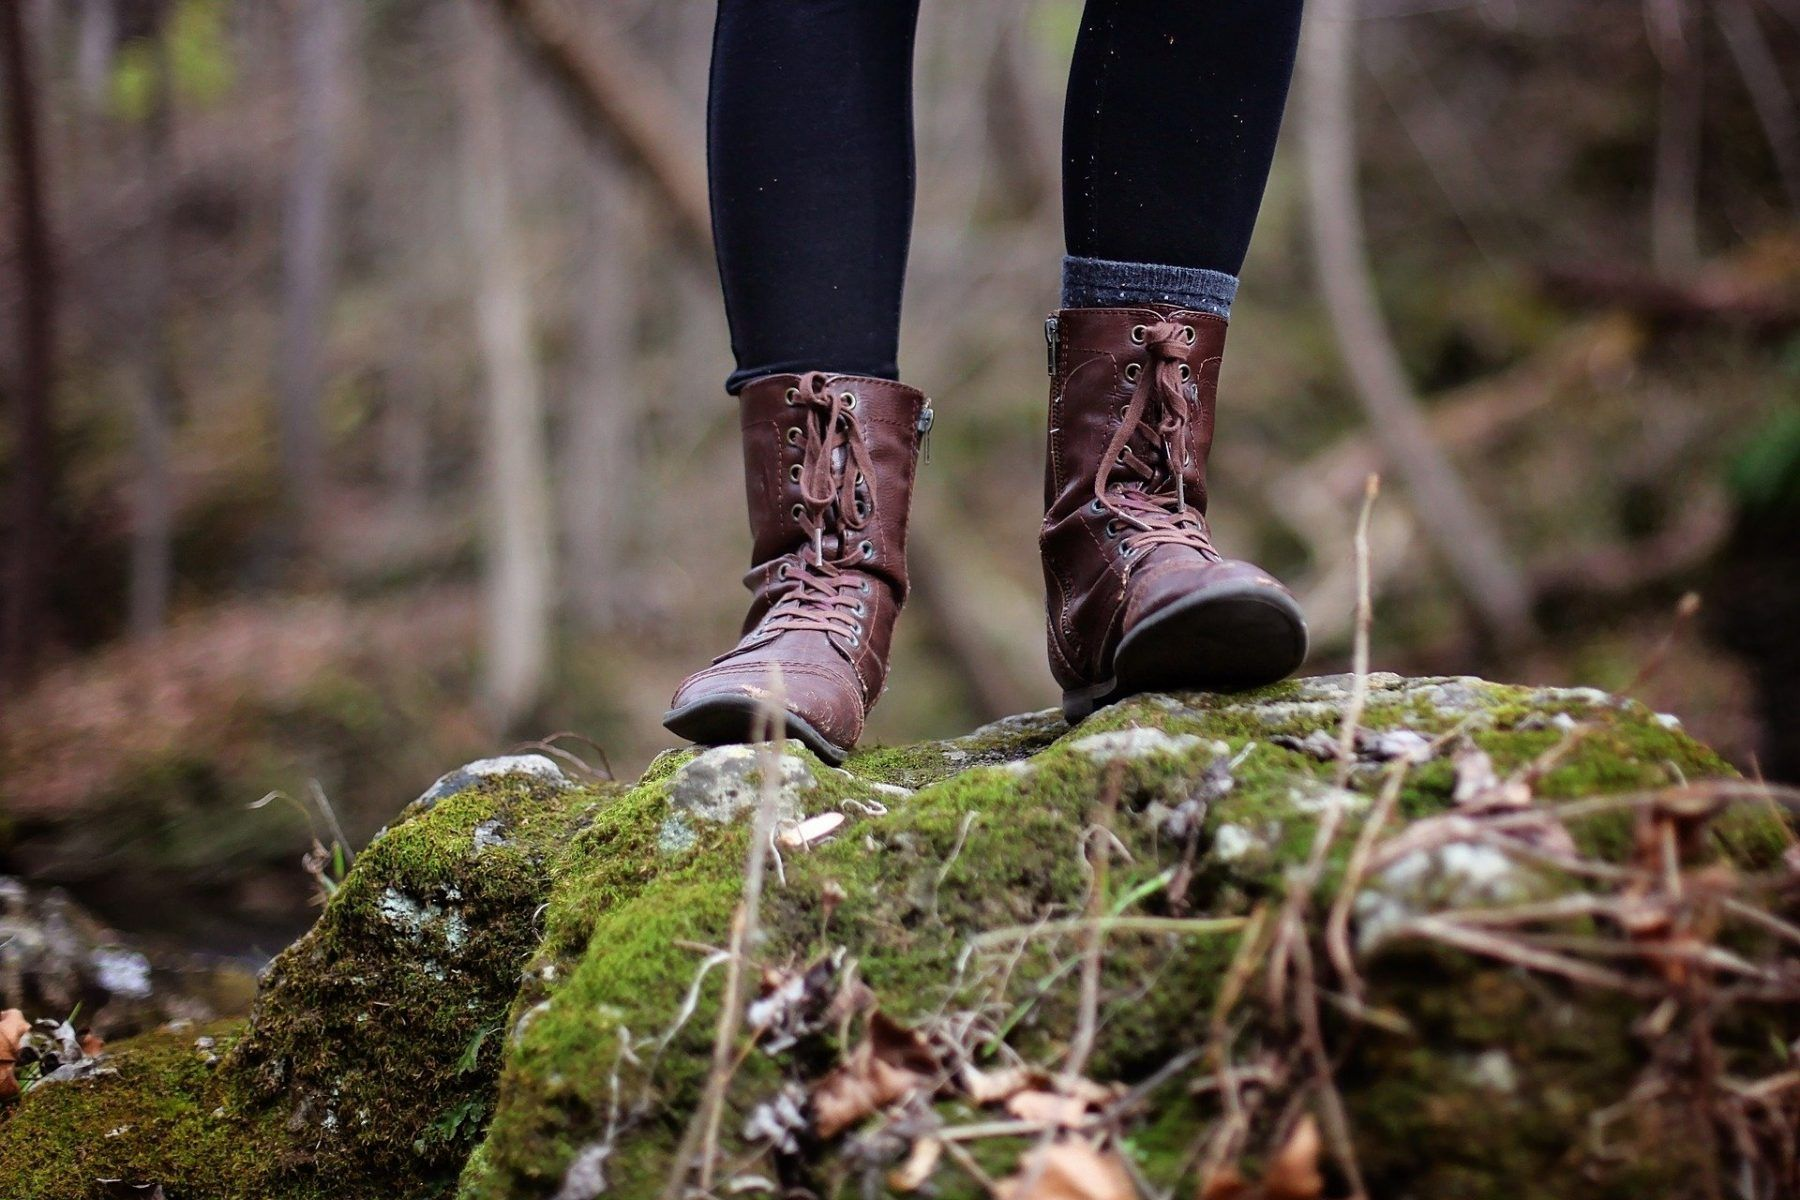 An image of a nature hike